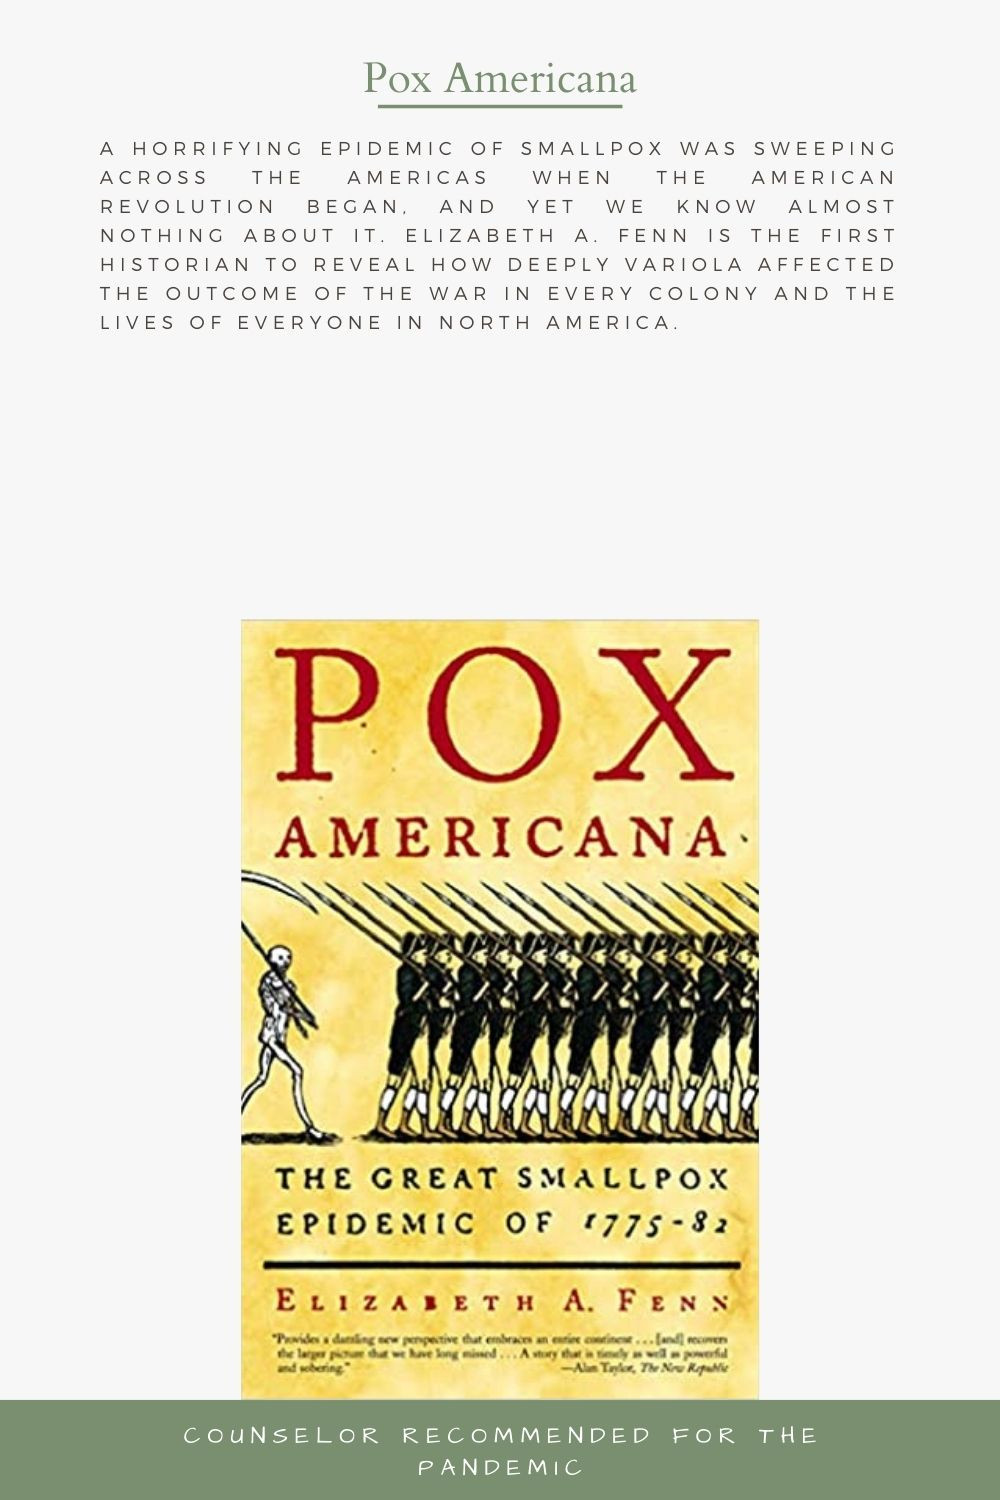 The Great Smallpox Epidemic of 1775-82